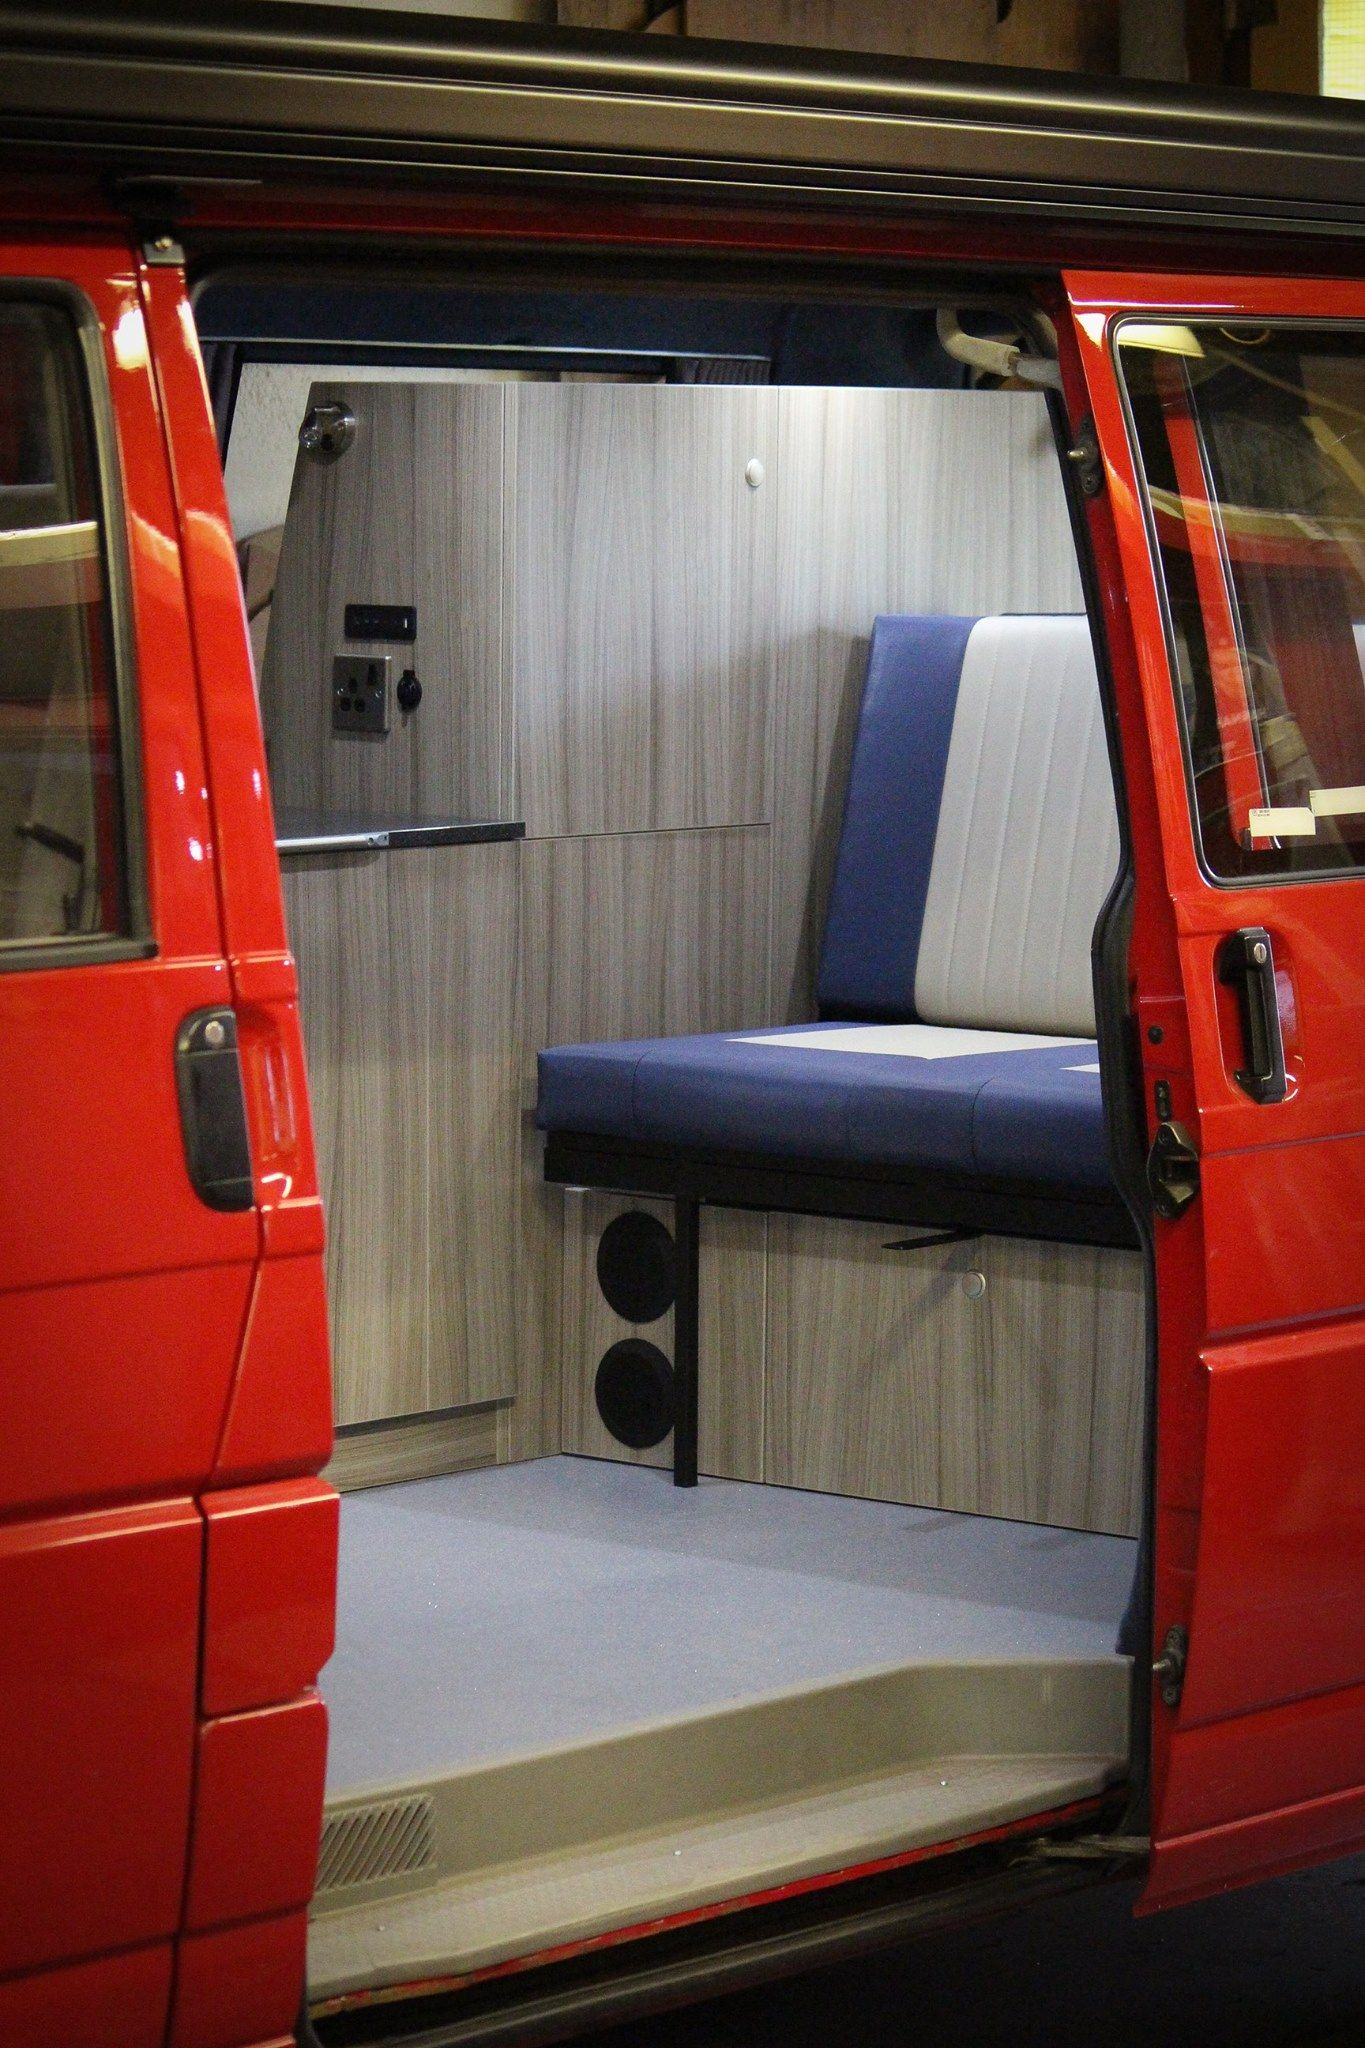 Sprinter Rv Conversion >> Speakers & subwoofer with bluetooth audio system. | VW T4 ...